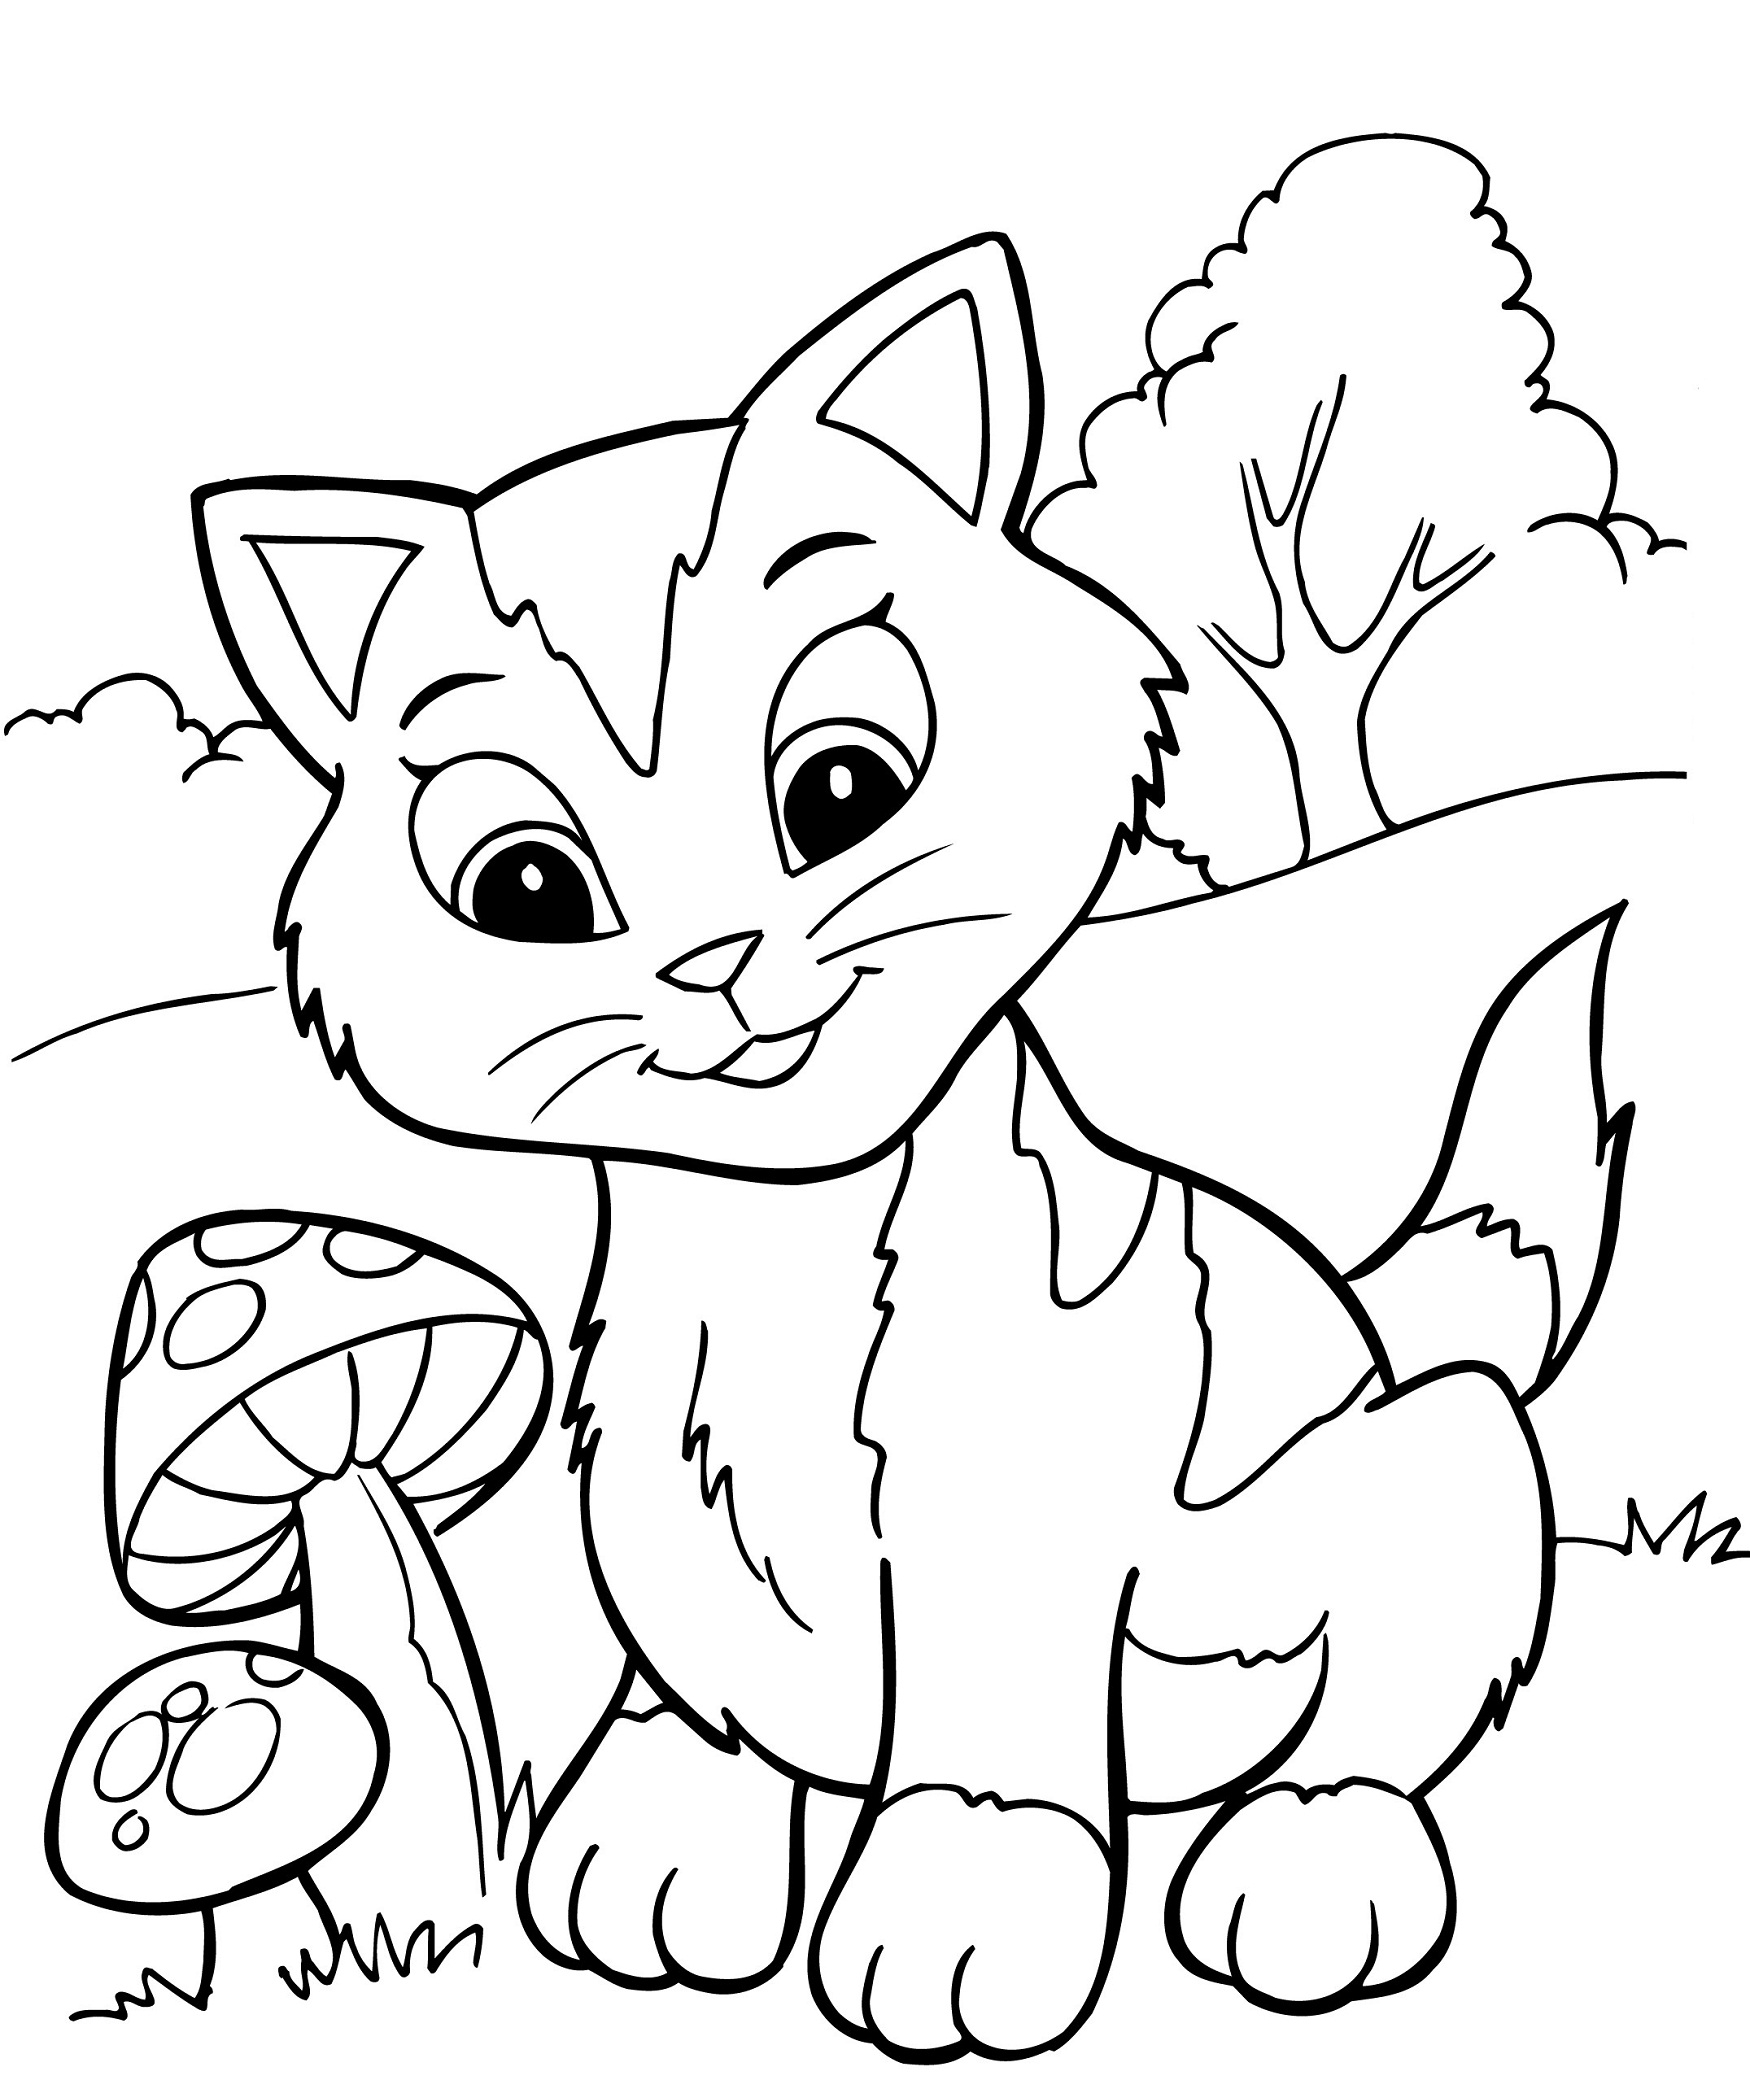 coloring book for kids pdf preschool pages pdf coloring pages pdf for coloring book kids